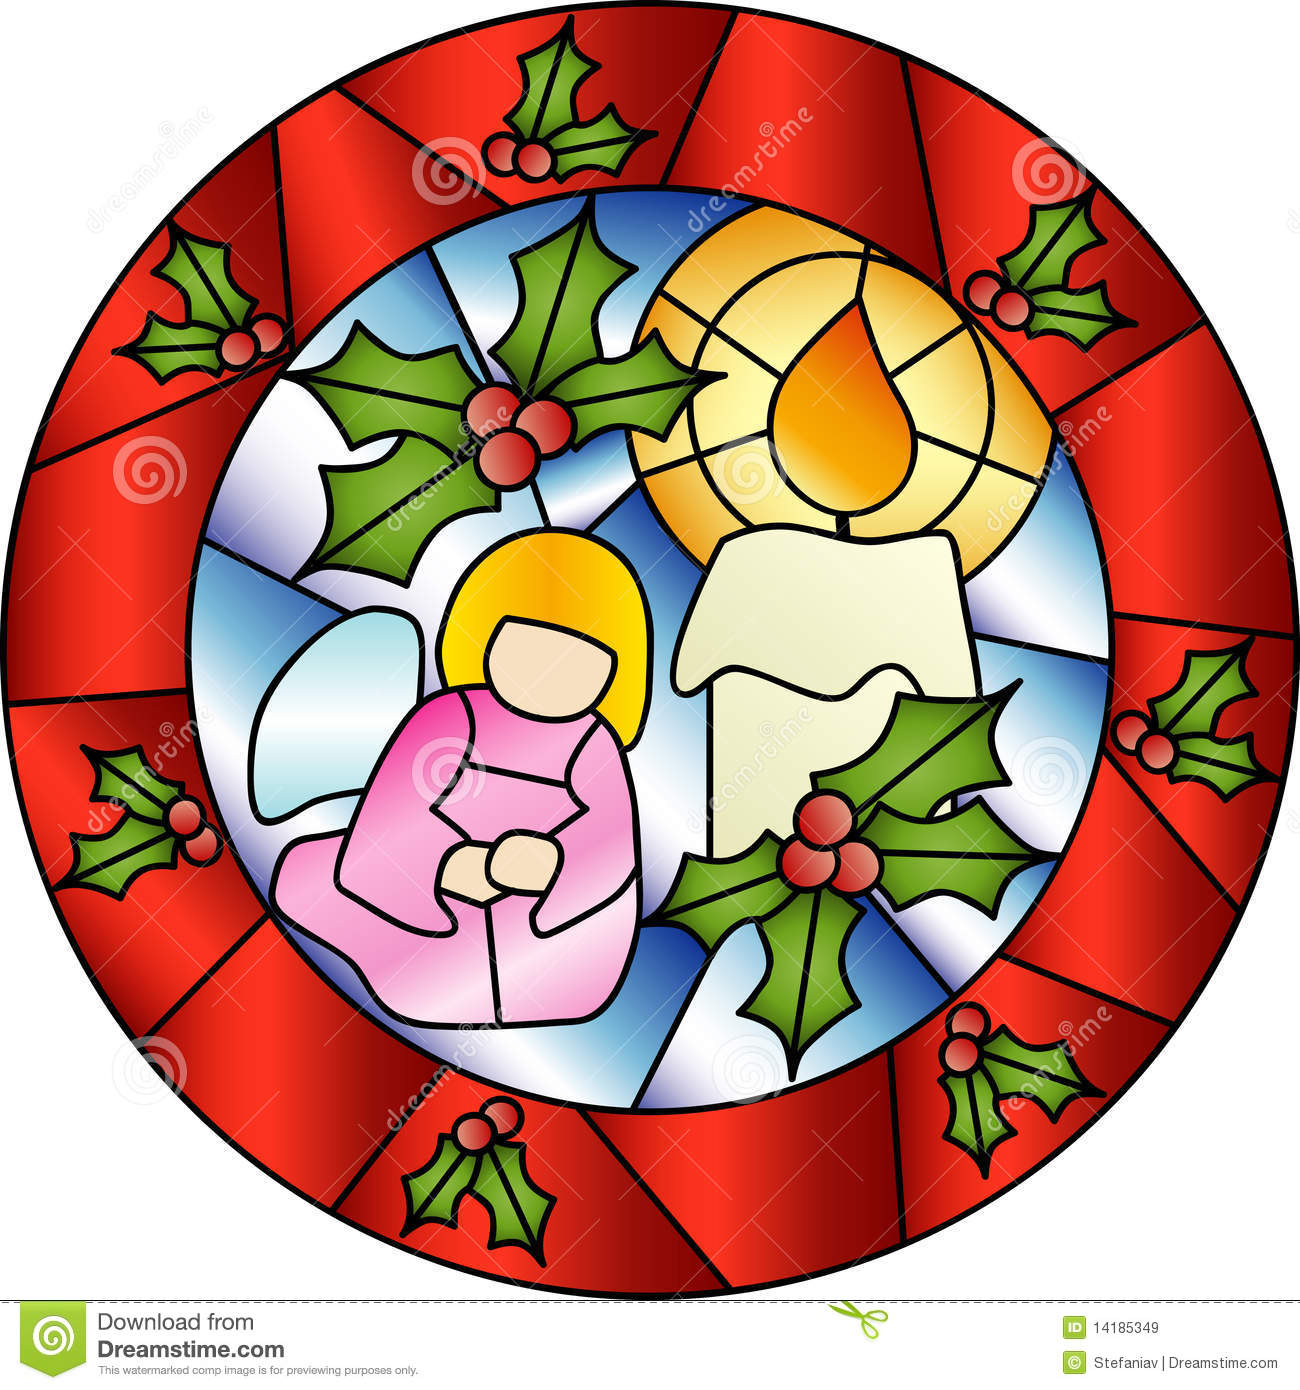 Christmas stained glass decoration stock vector image